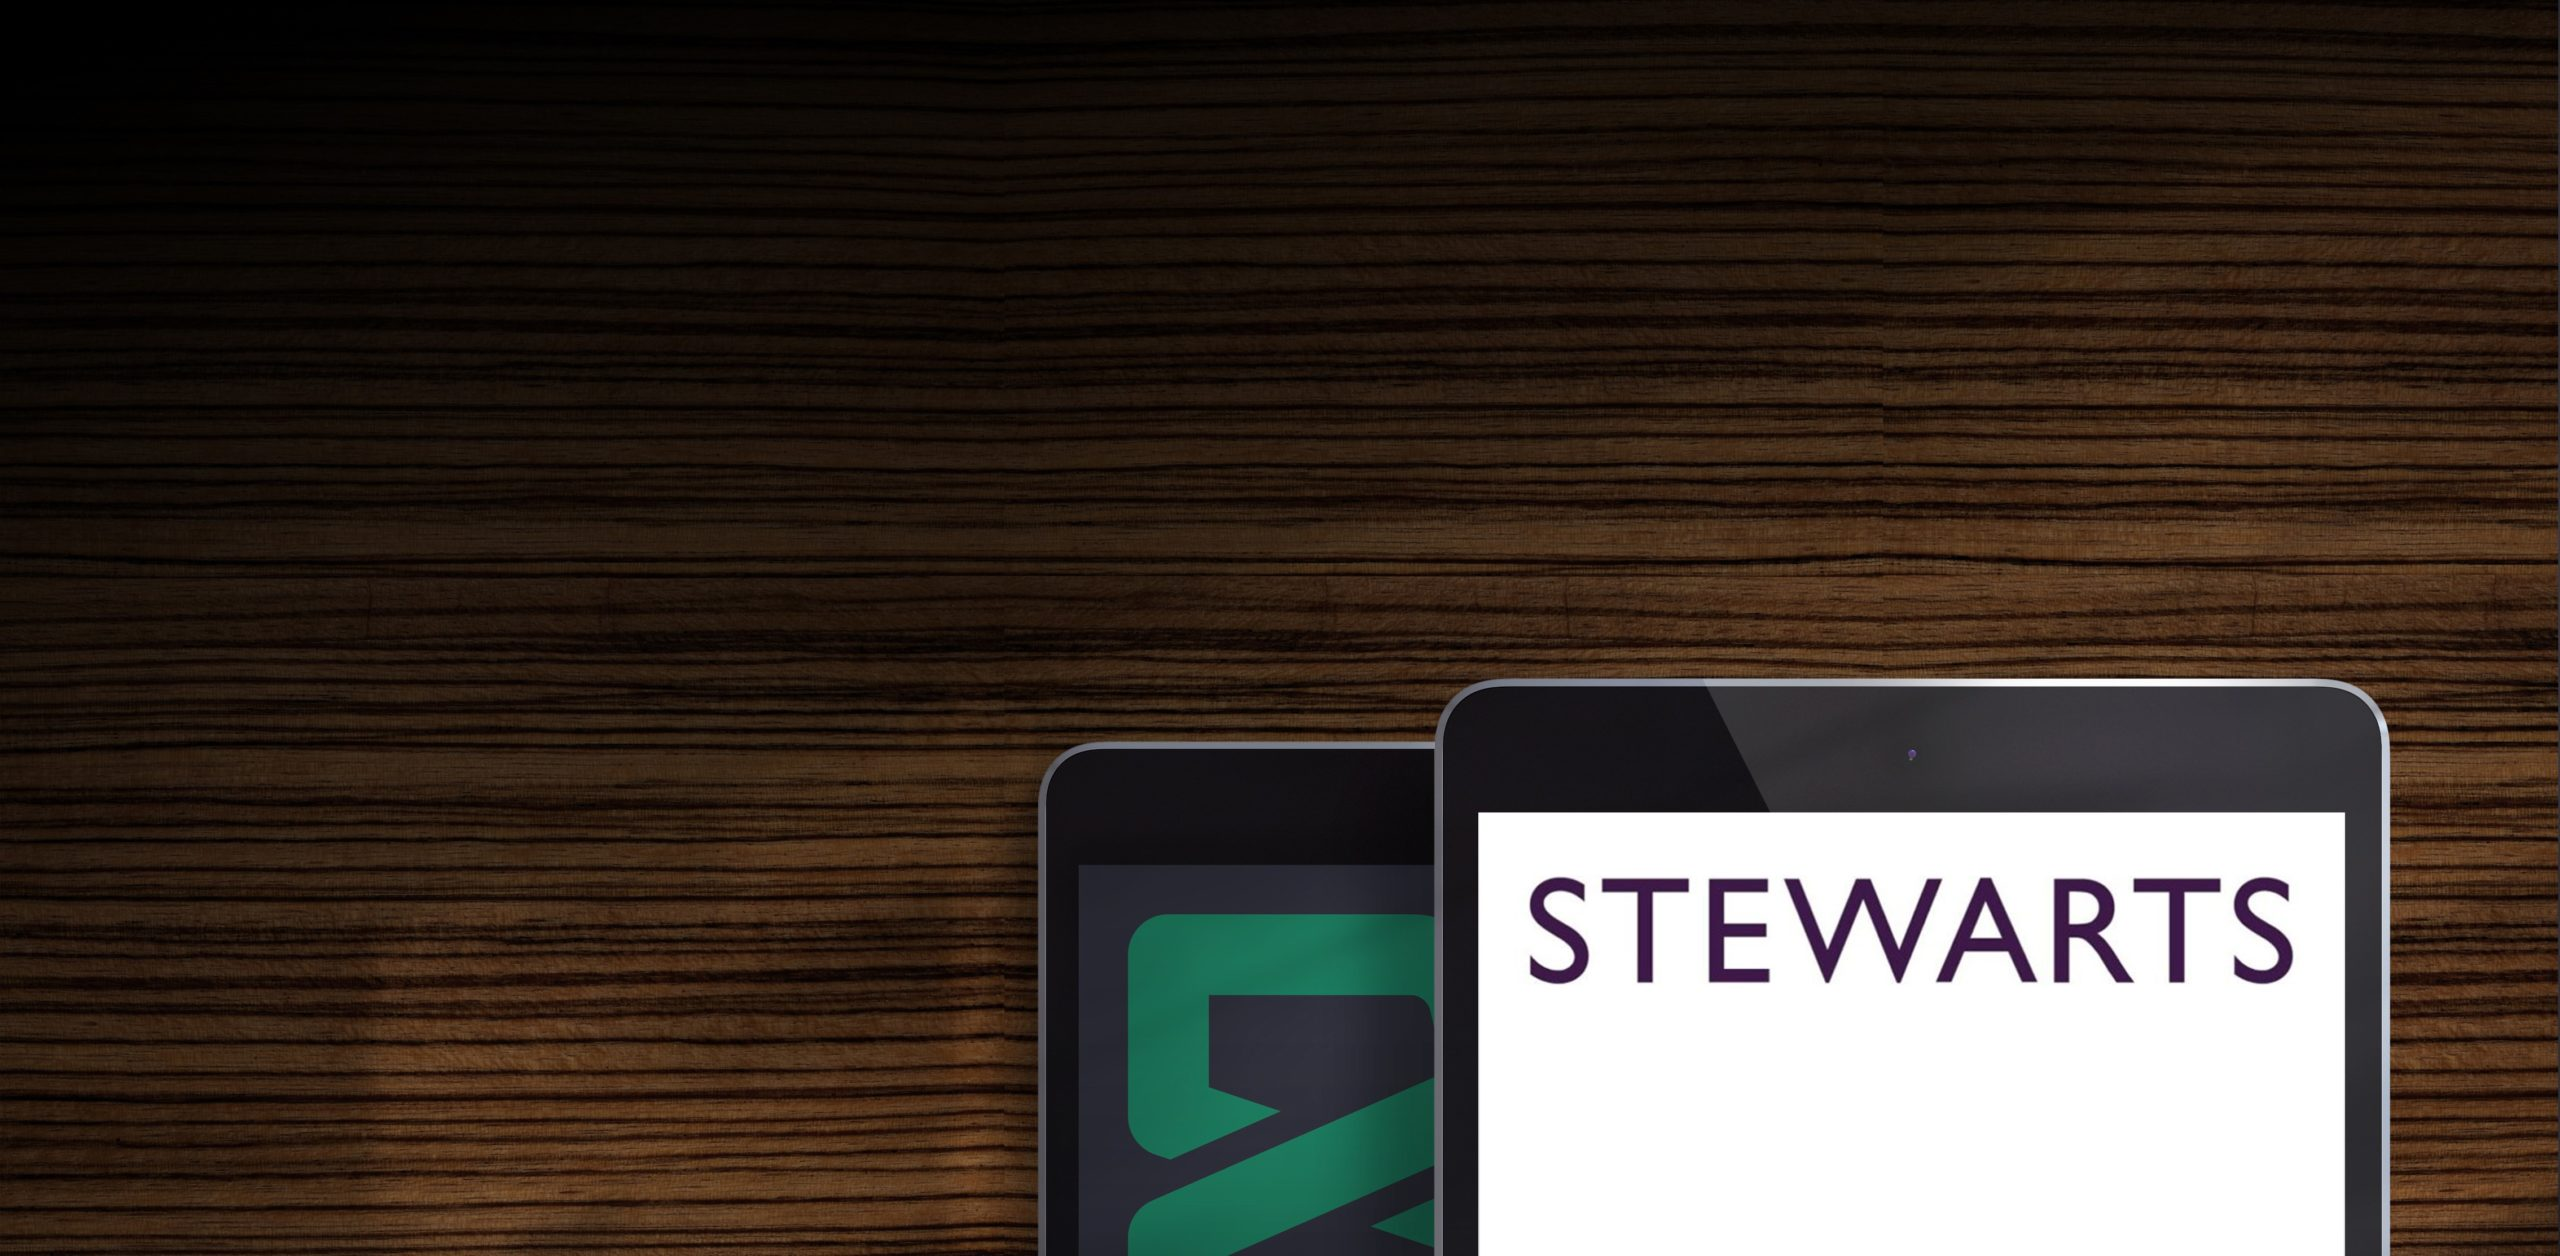 Stewarts embrace mobility in the boardroom